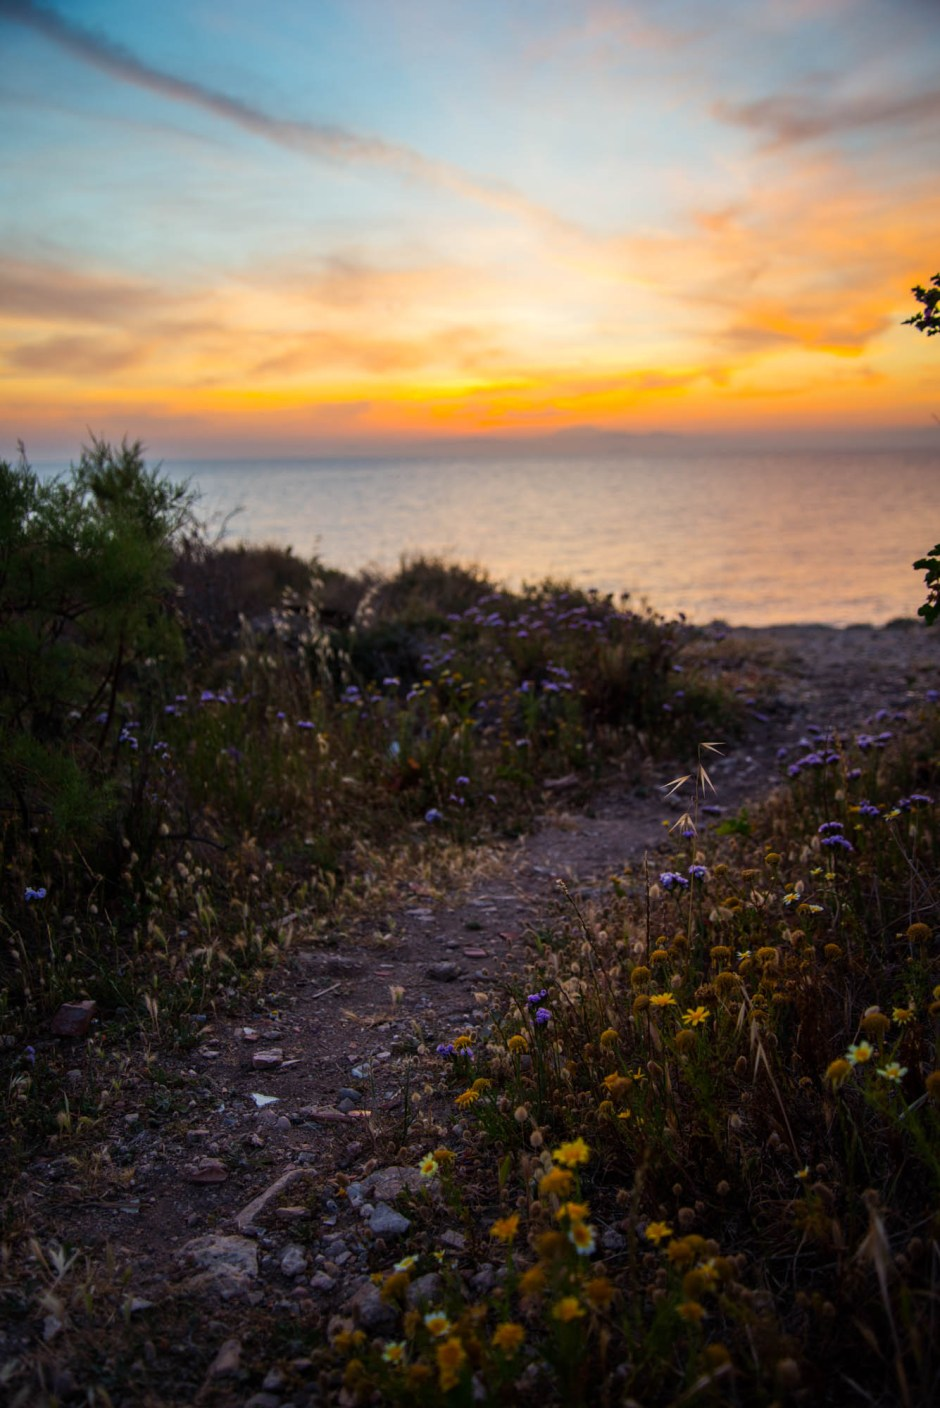 Purple and yellow wildflower line a rarely used trail leading to a sunset over the Mediterranean sea.